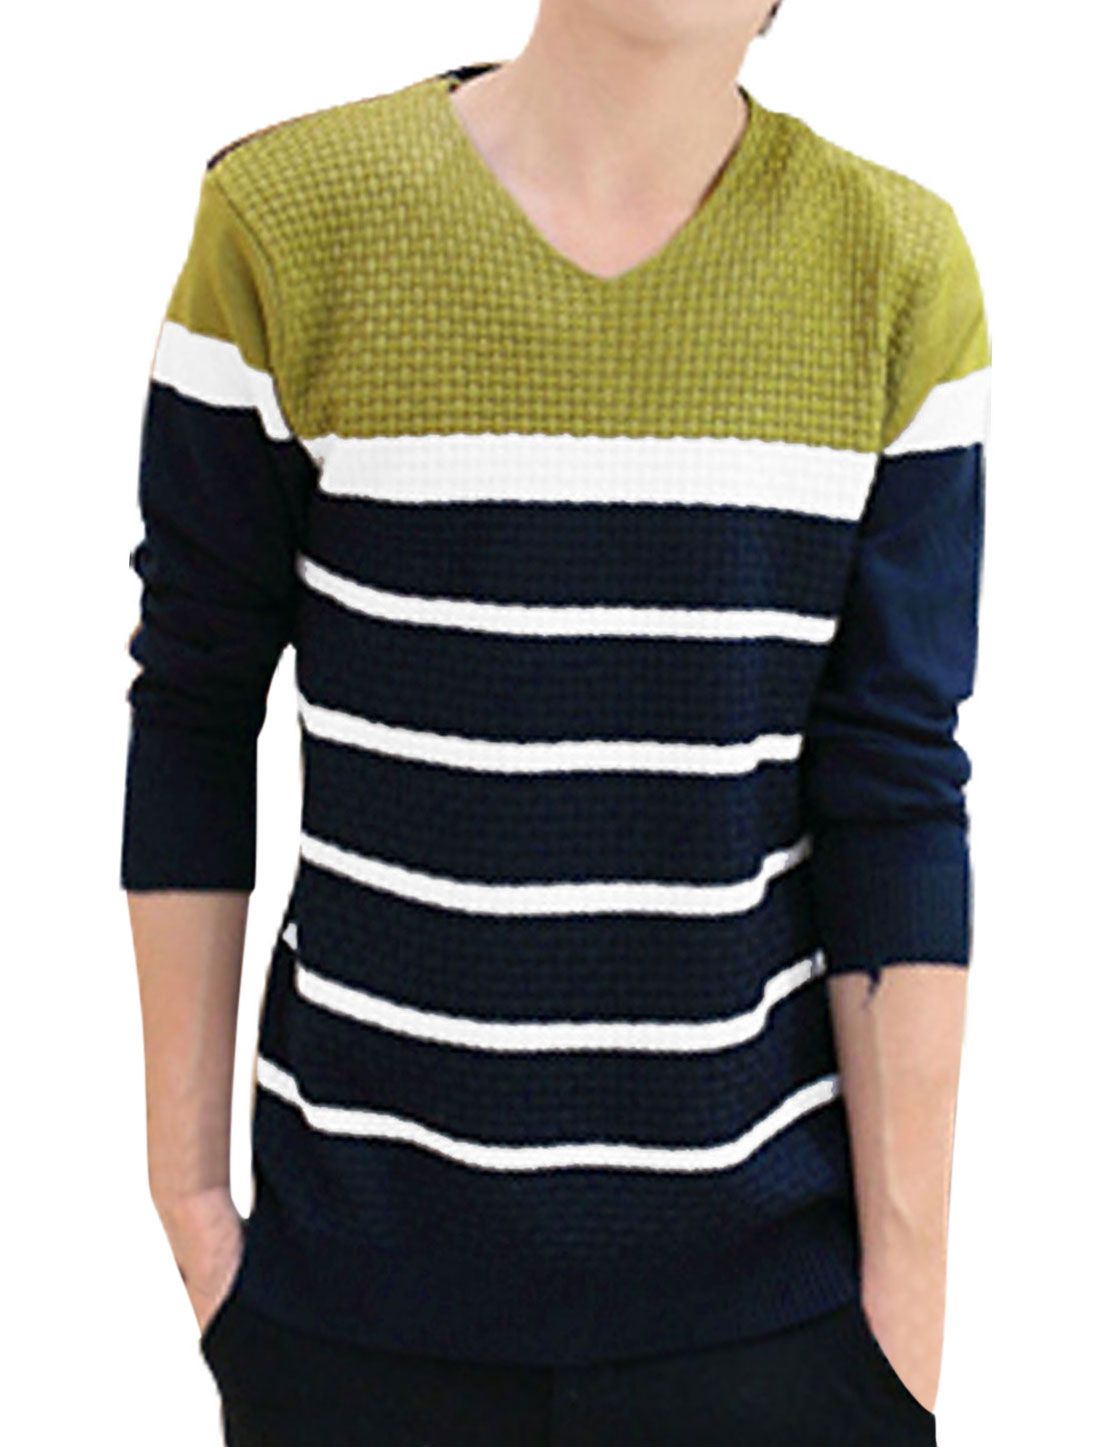 Men V Neck Contrast Color Stripes Knit Shirt Light Green Navy Blue S